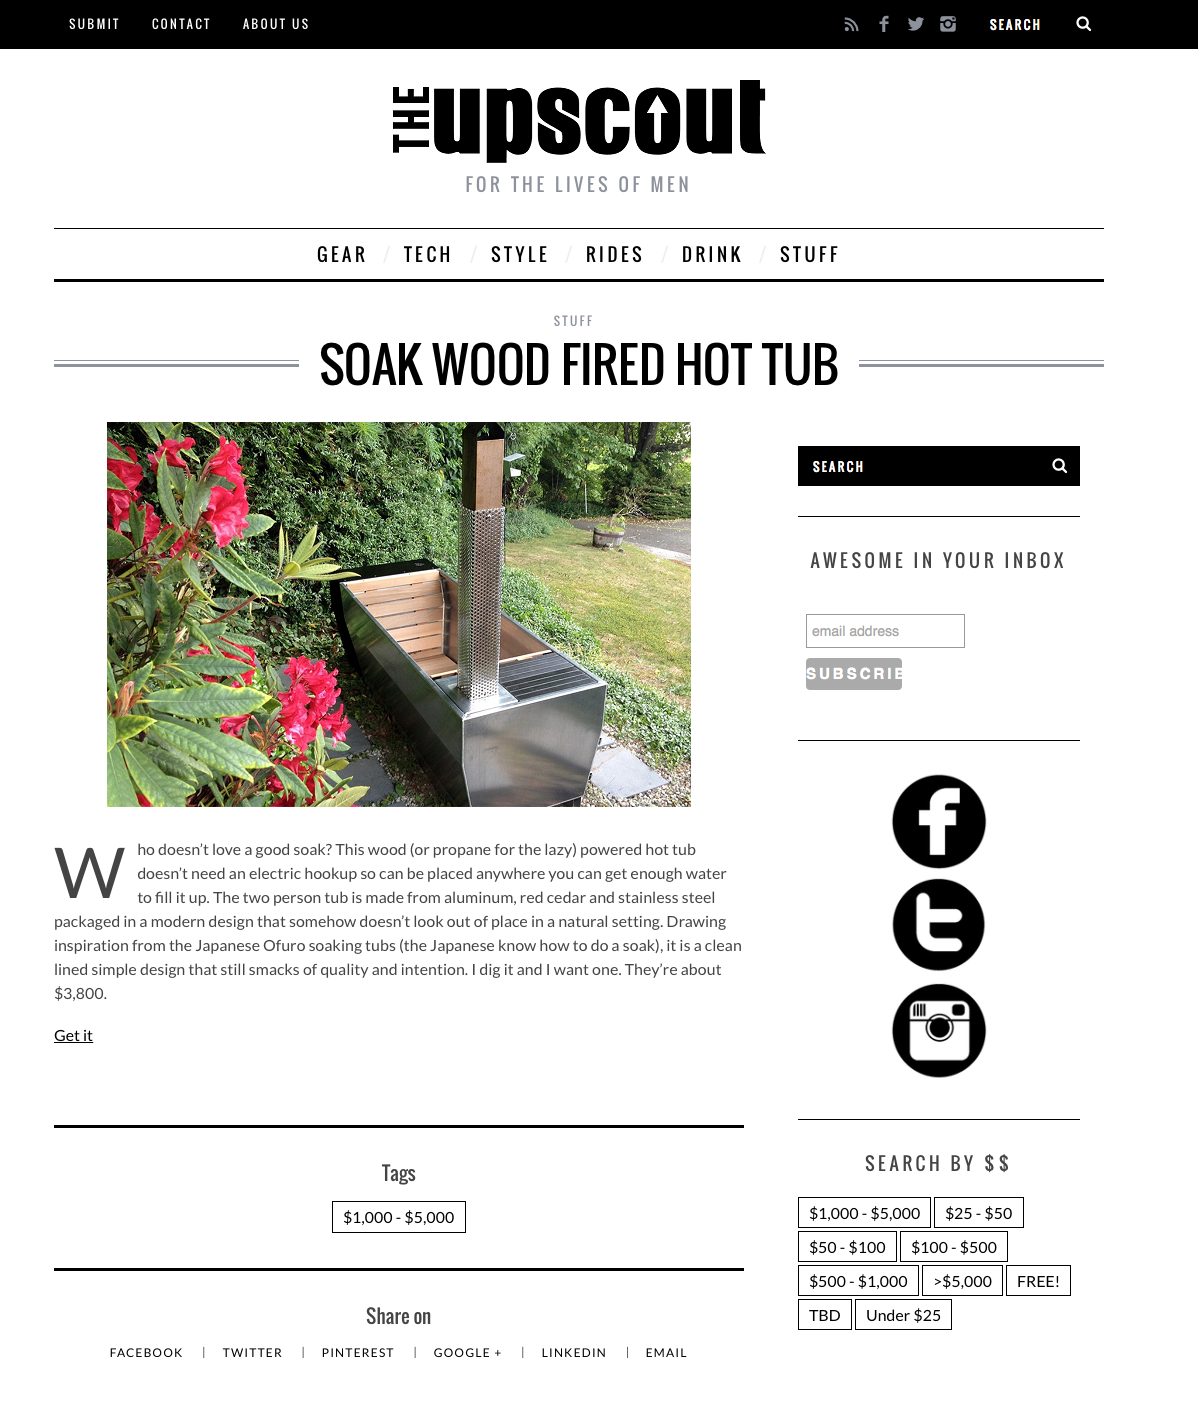 The Upscout